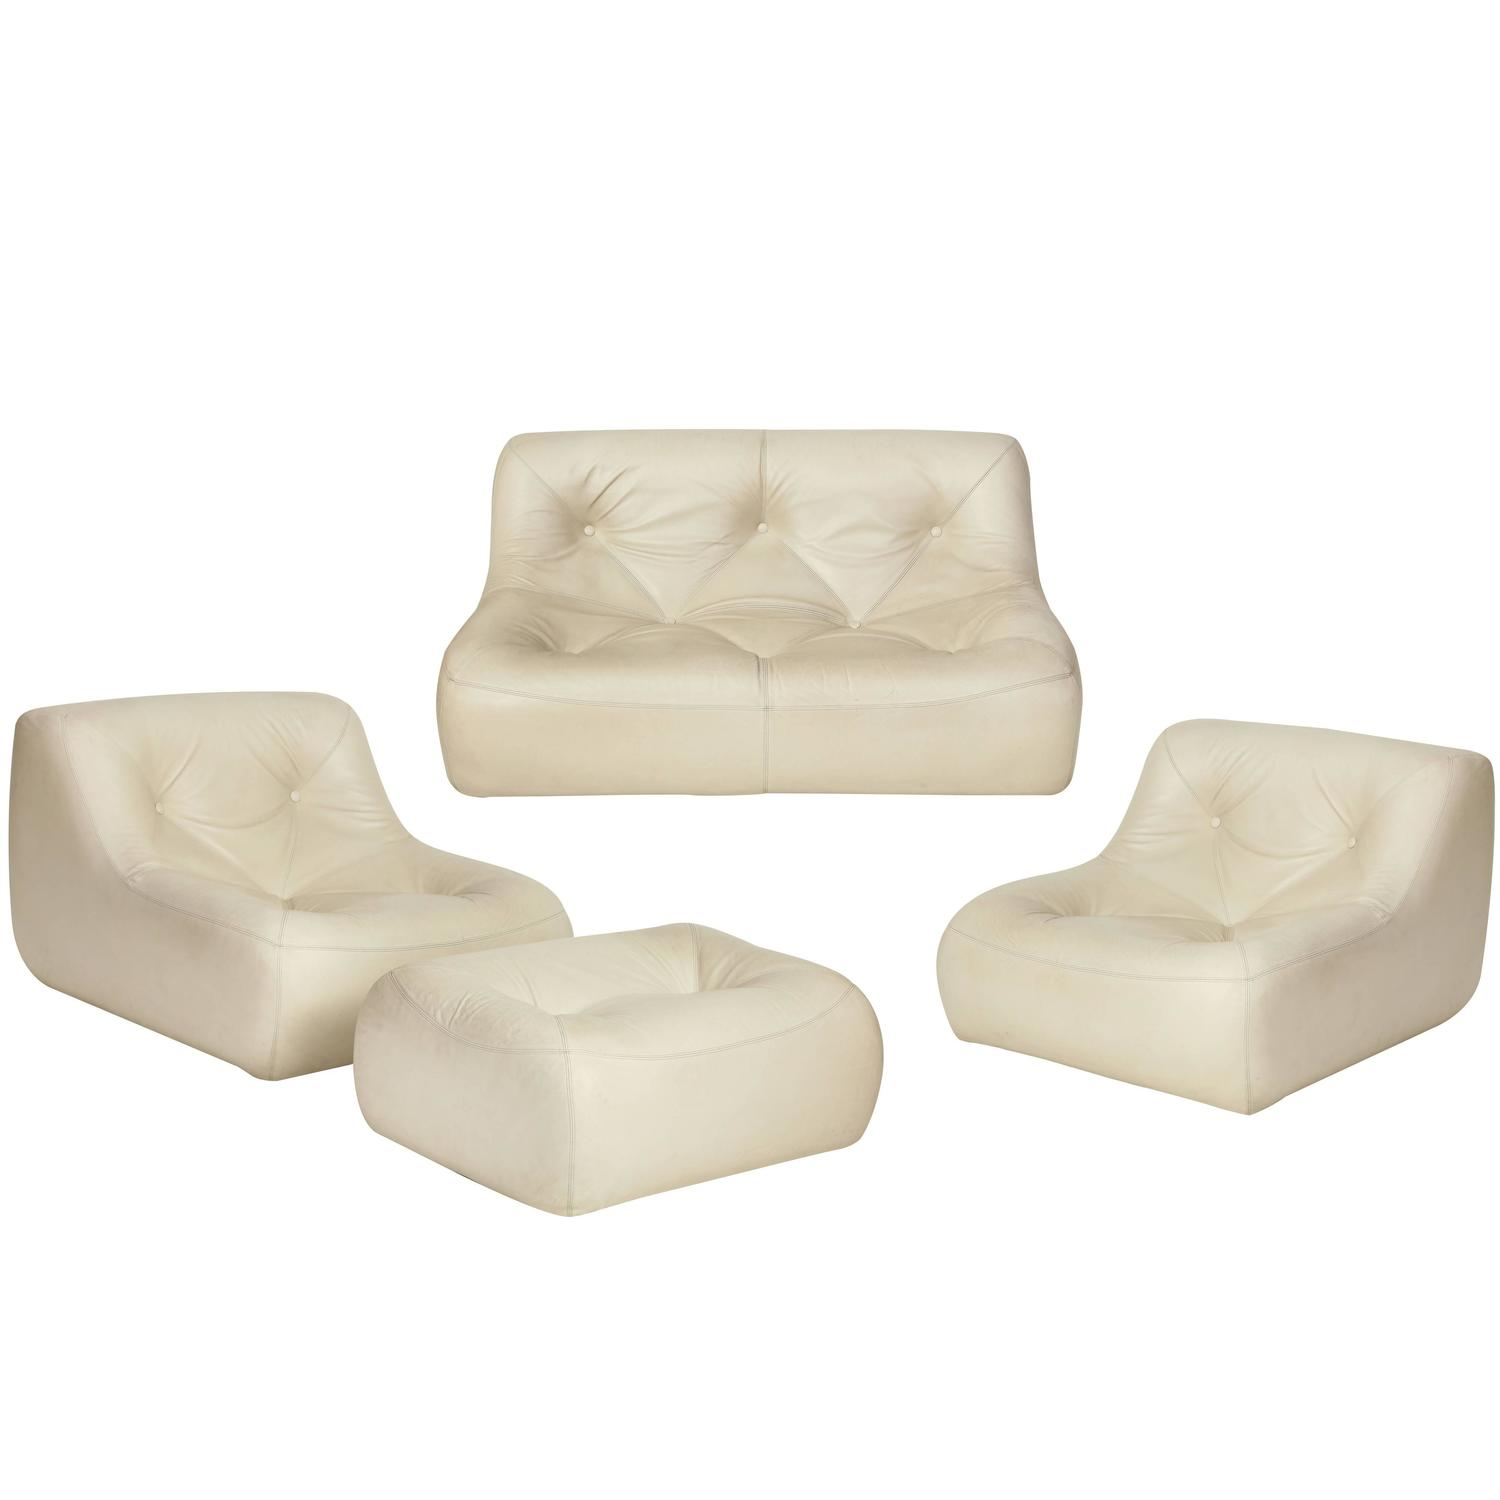 ligne roset vintage white leather set michel ducaroy kali chair sofa 1970 for sale at 1stdibs. Black Bedroom Furniture Sets. Home Design Ideas